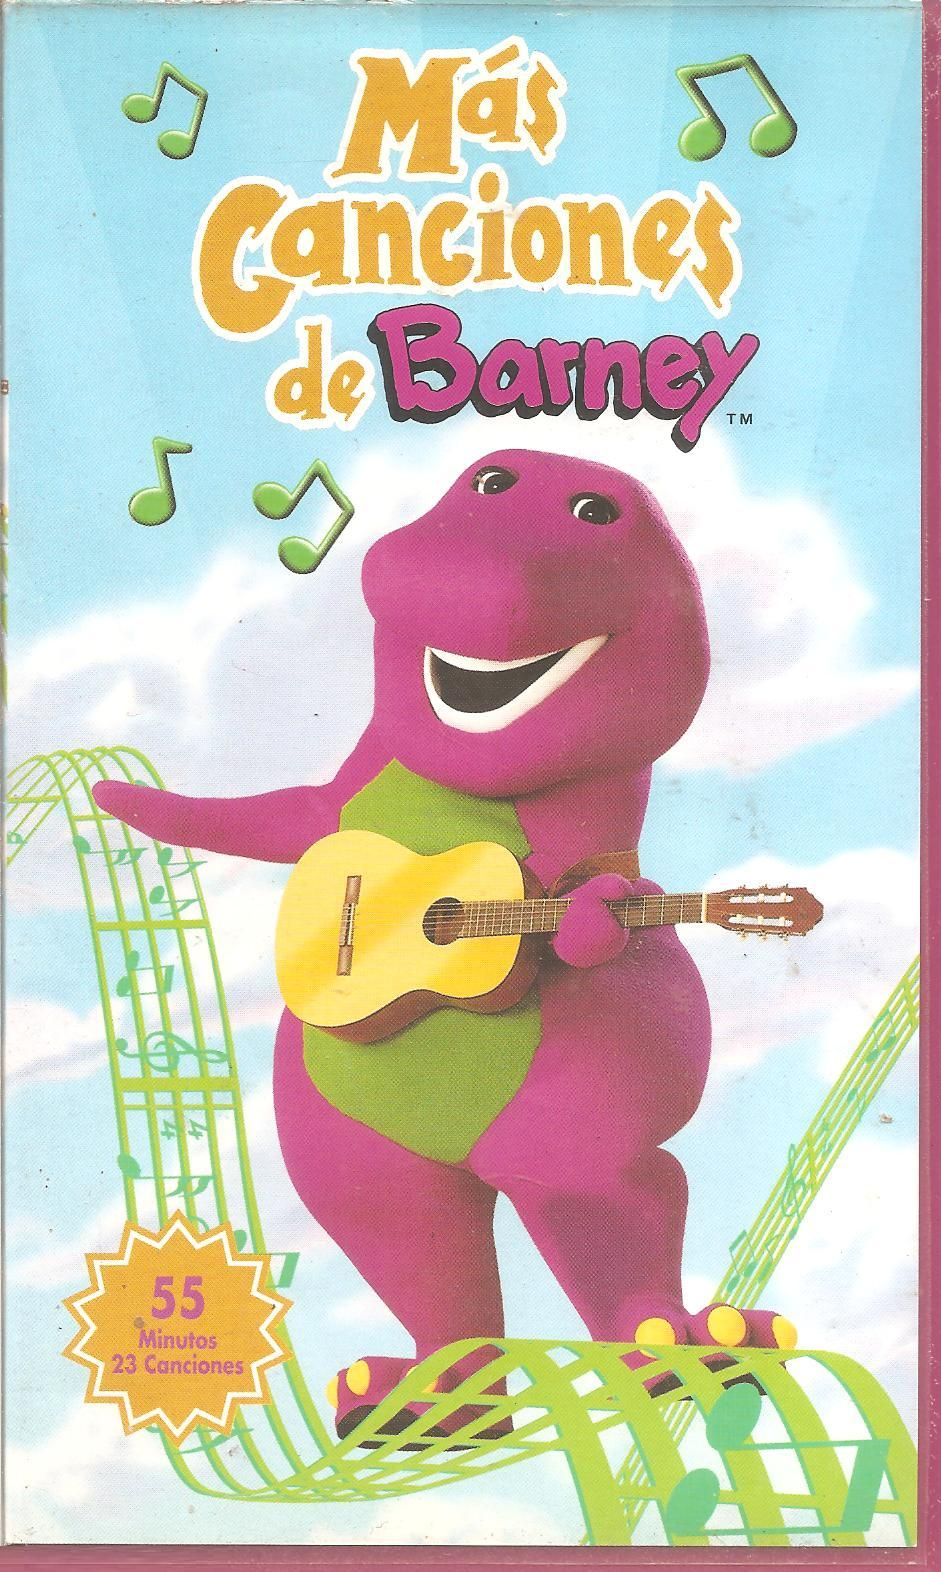 More Barney Songs | Barney Wiki | FANDOM powered by Wikia